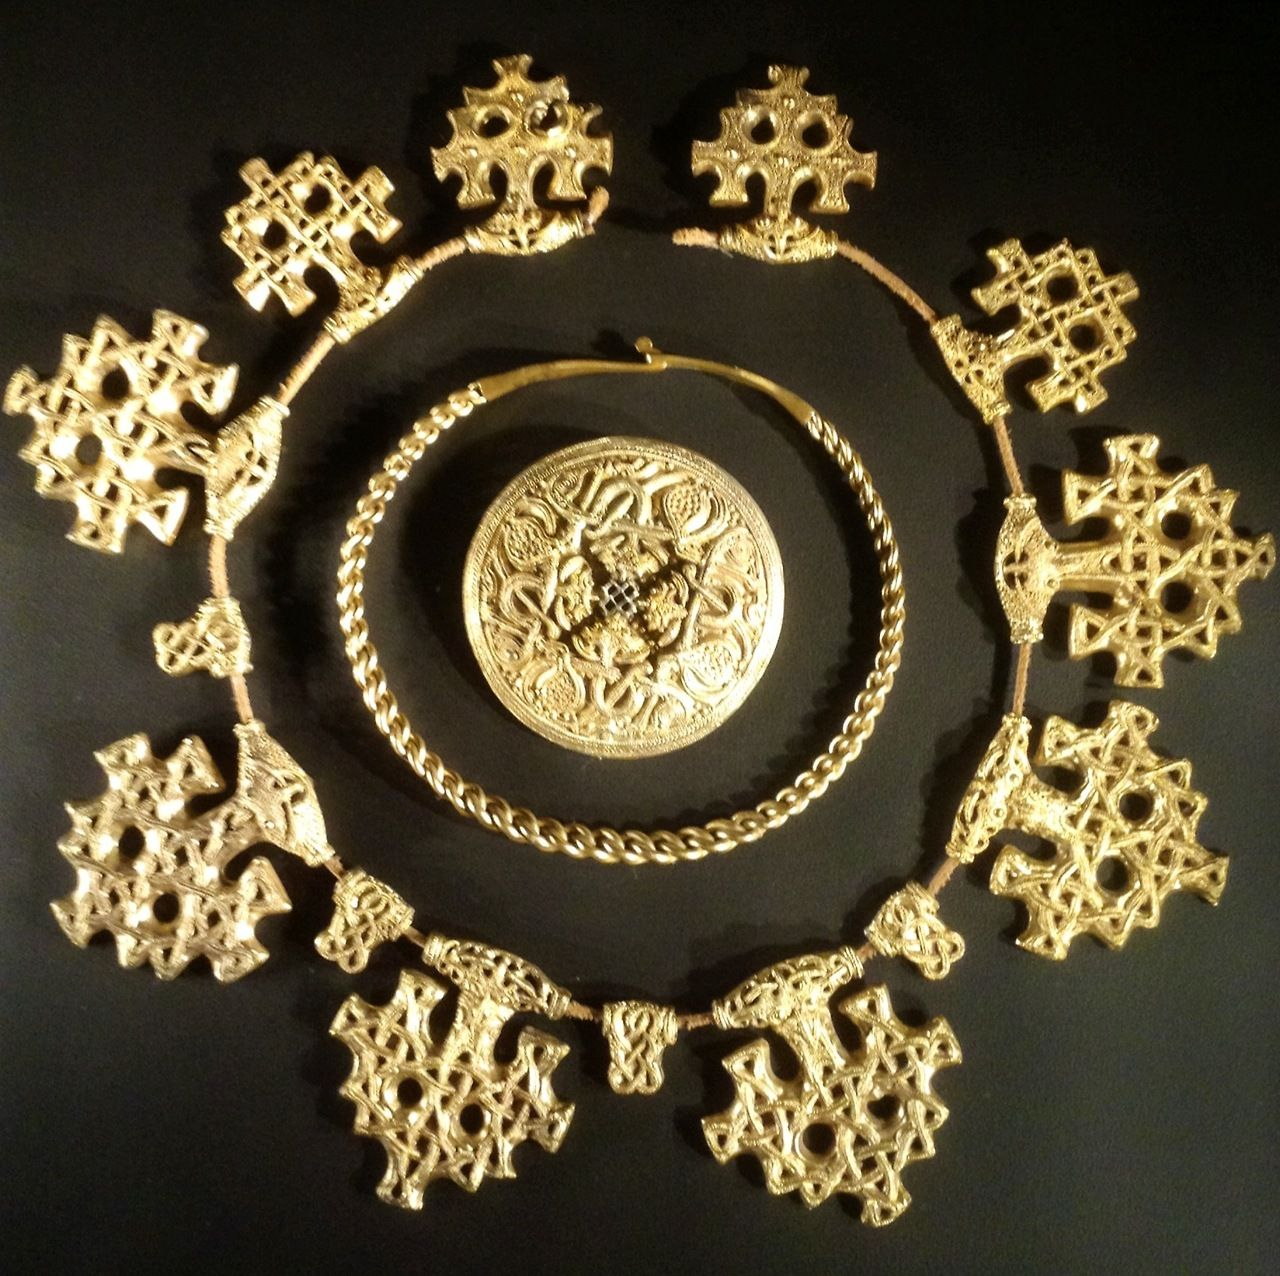 233a383c65101 Viking jewelry, currently on display at the National Museum of ...